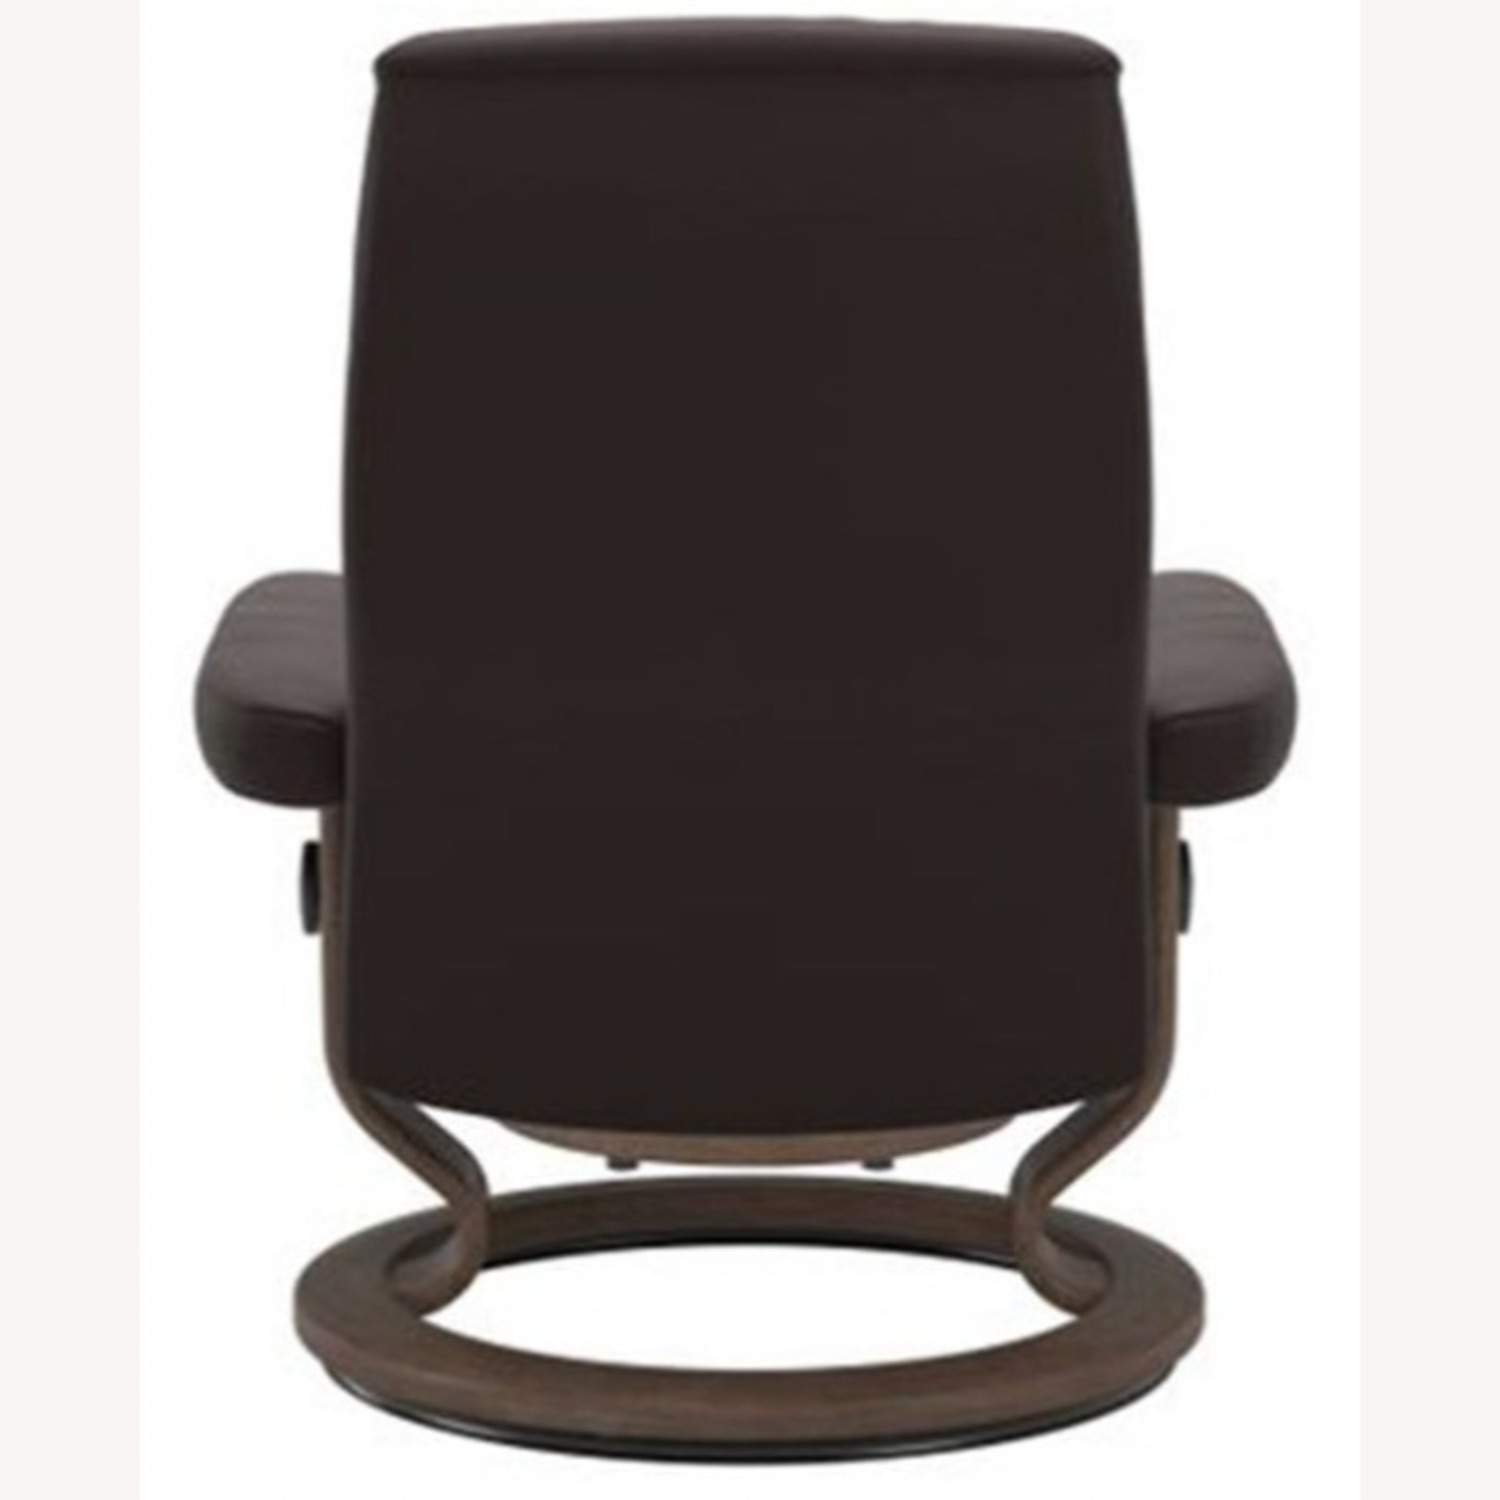 Raymour & Flanigan Leather Reclining Chair and Ottoman - image-3